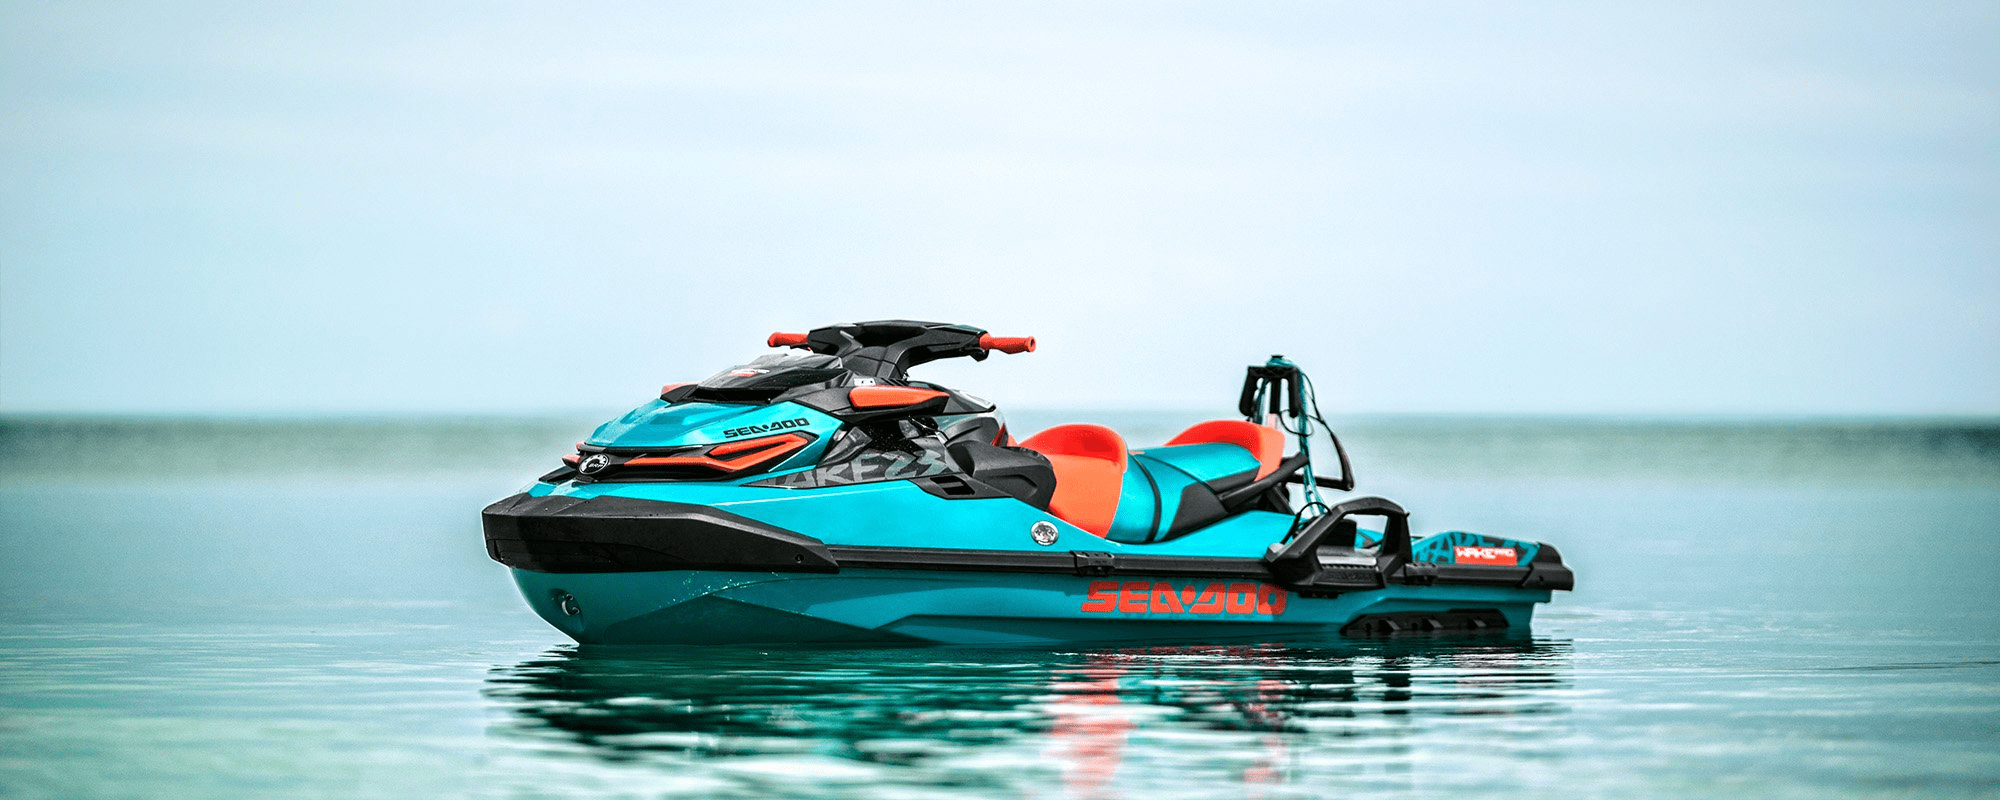 hight resolution of conduct regular inspections jet skis